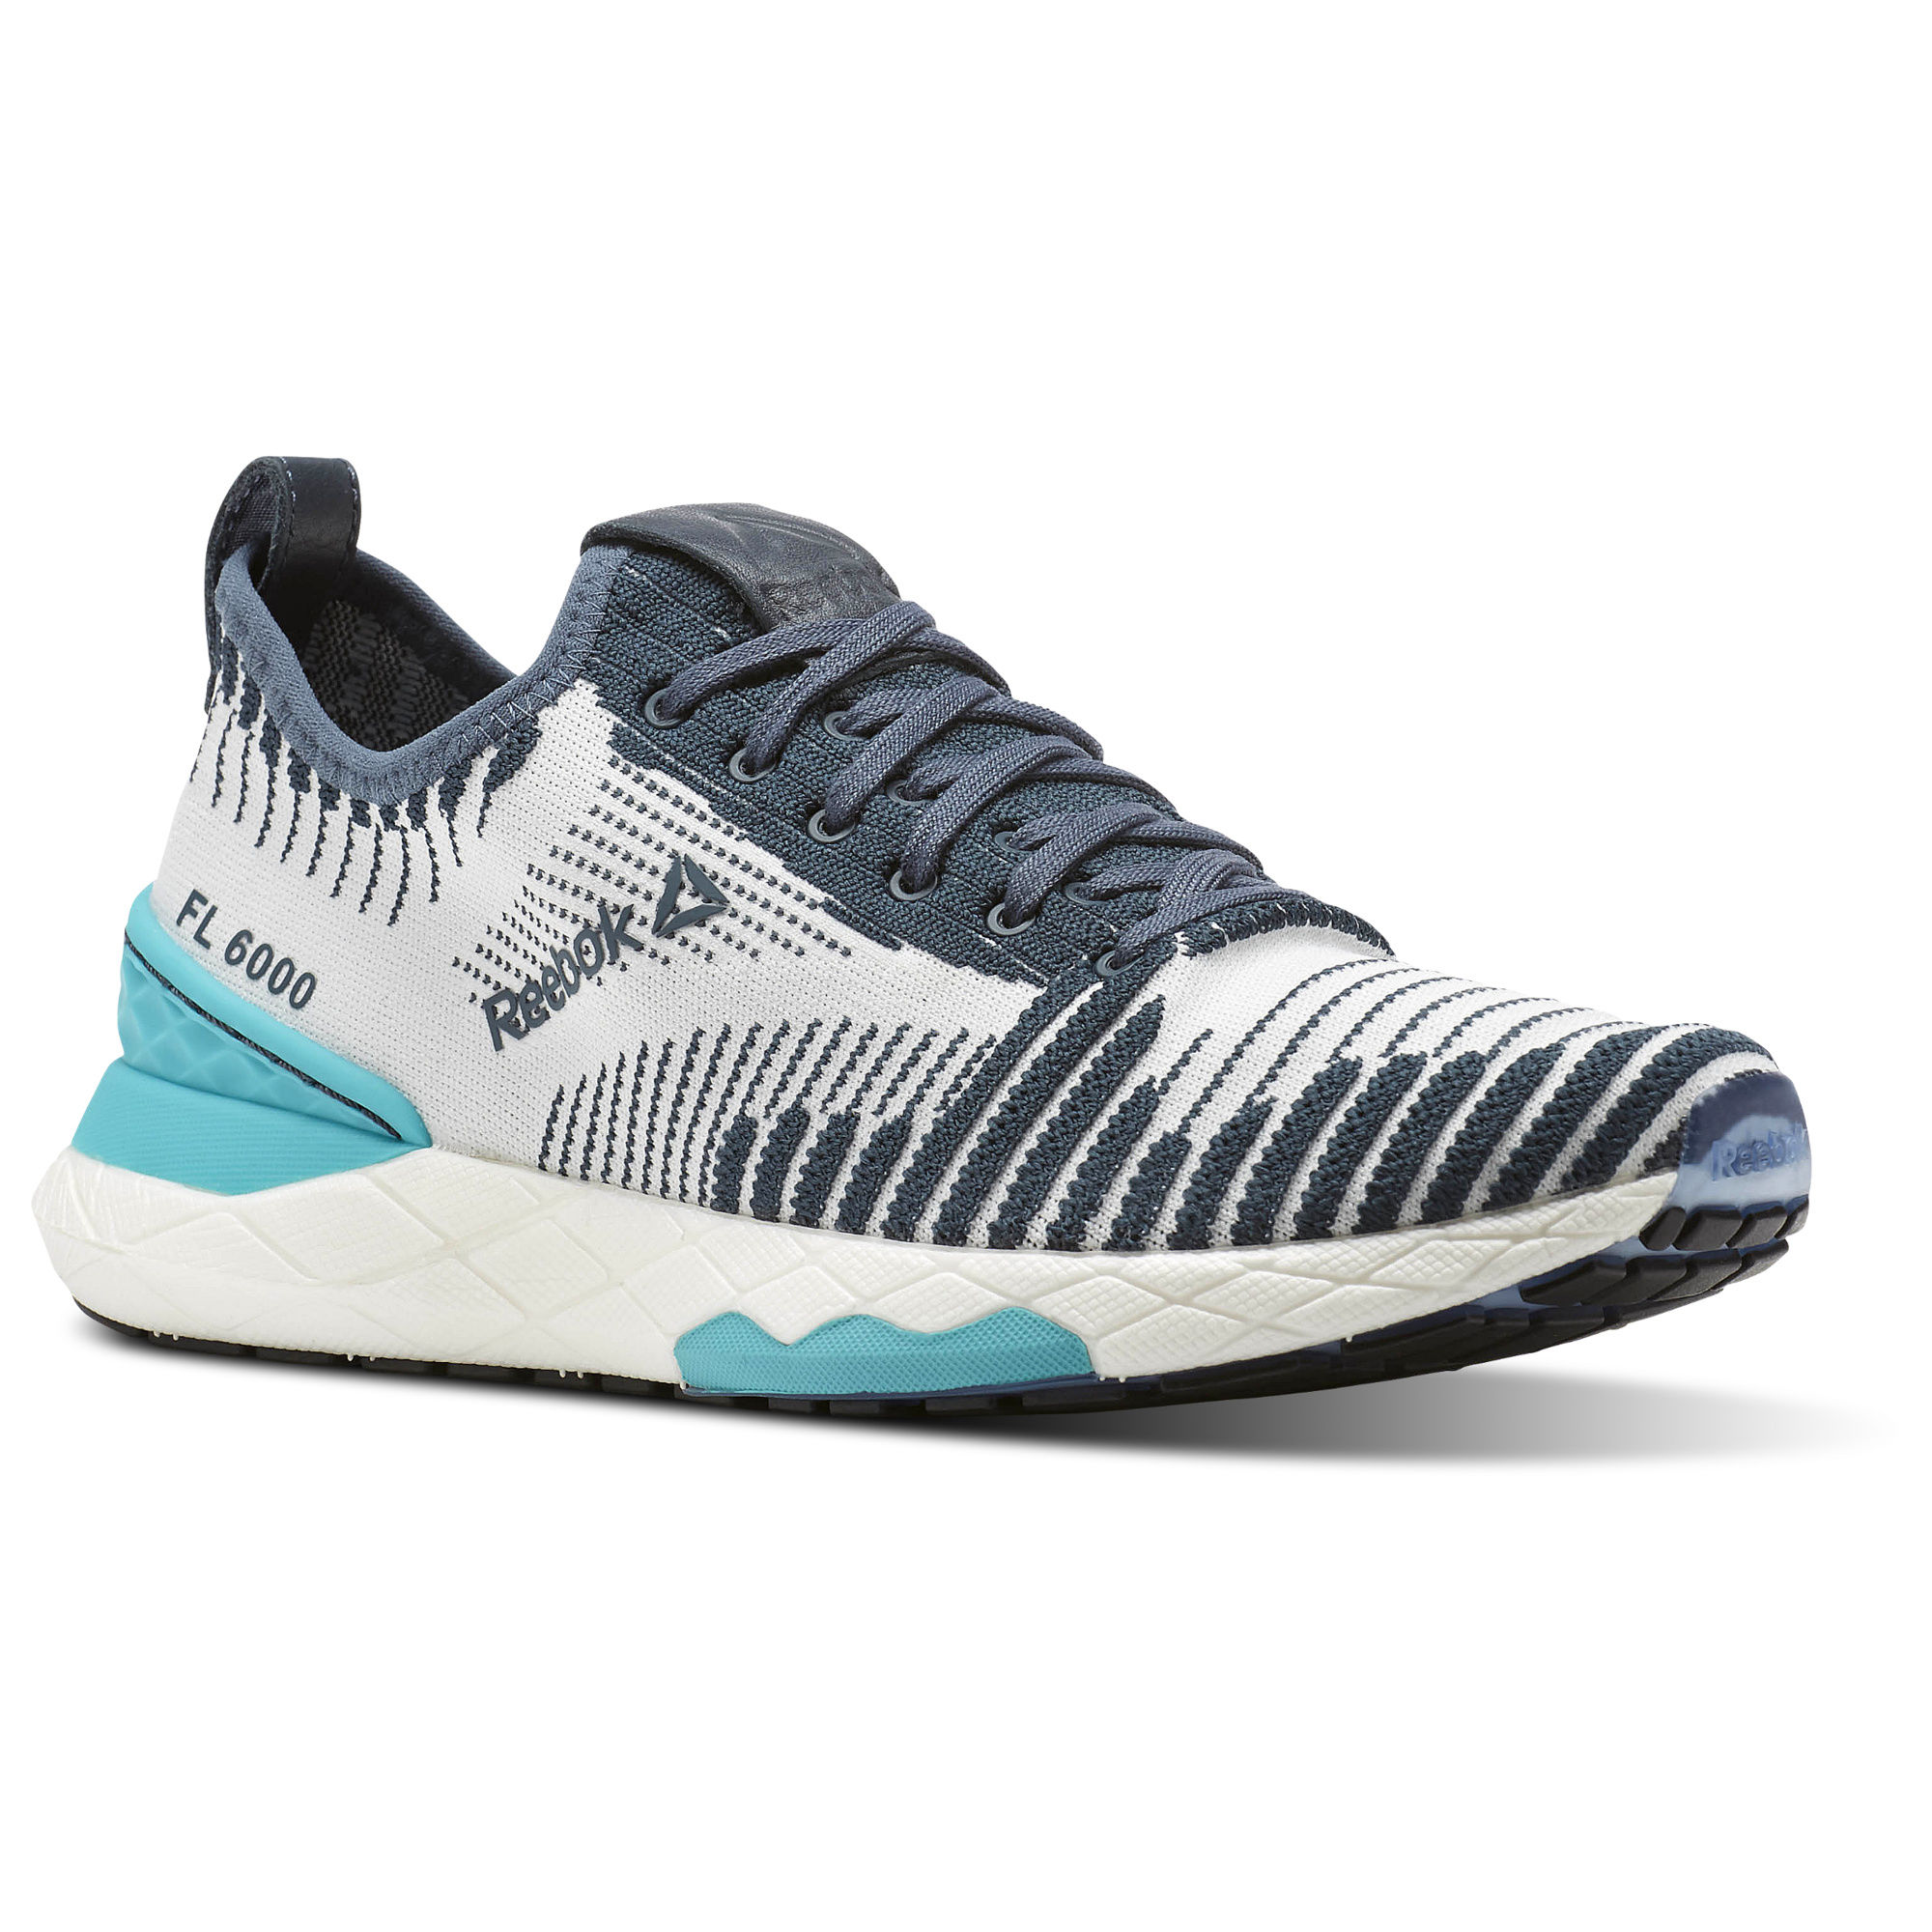 Reebok Floatride 6000 Womens Grey/Turquoise/White Sneakers (996ORZHK)